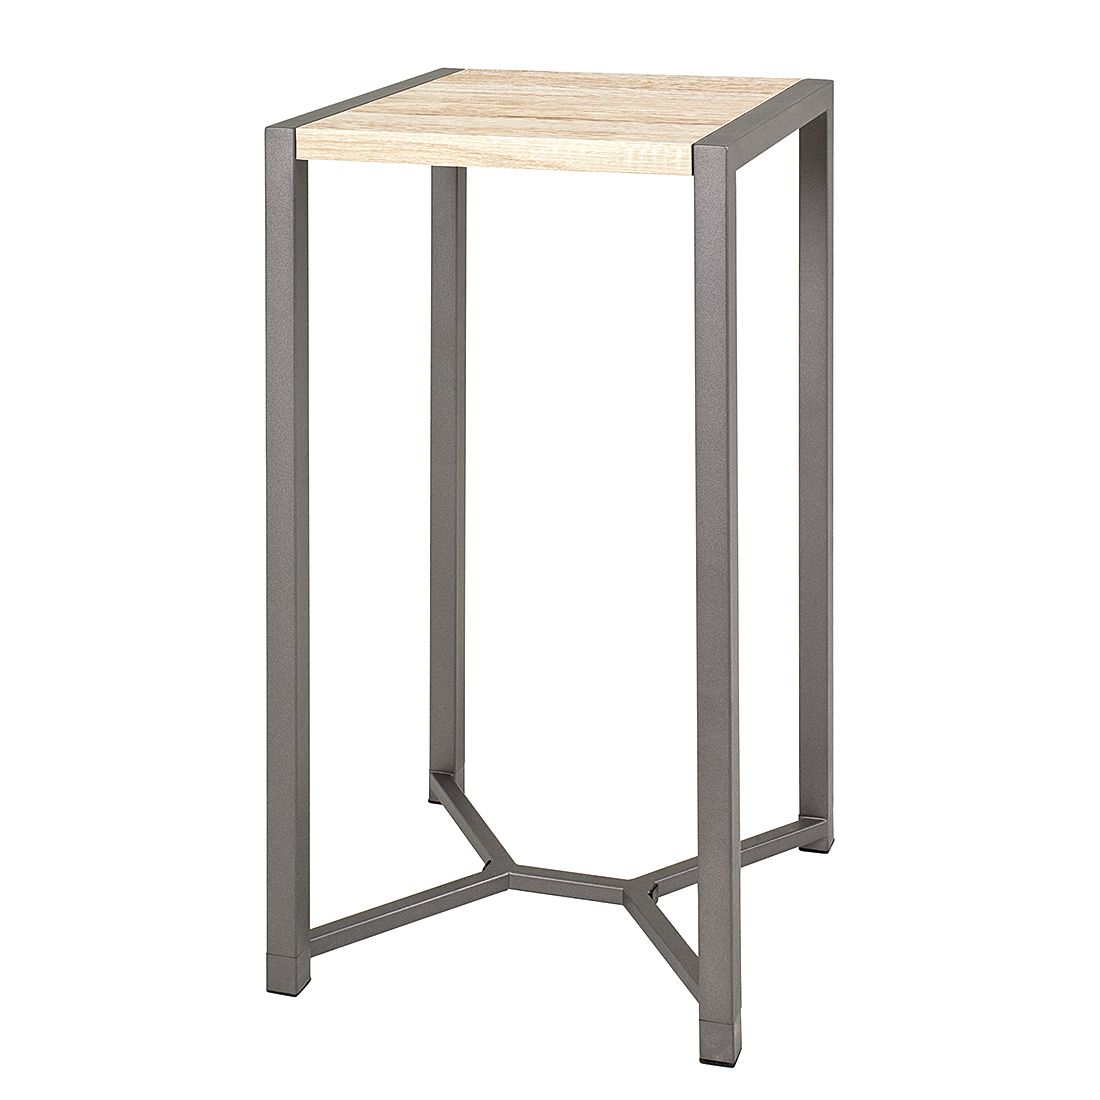 Table d'appoint Tammy III - Imitation chêne de San Remo / Anthracite, Home Design